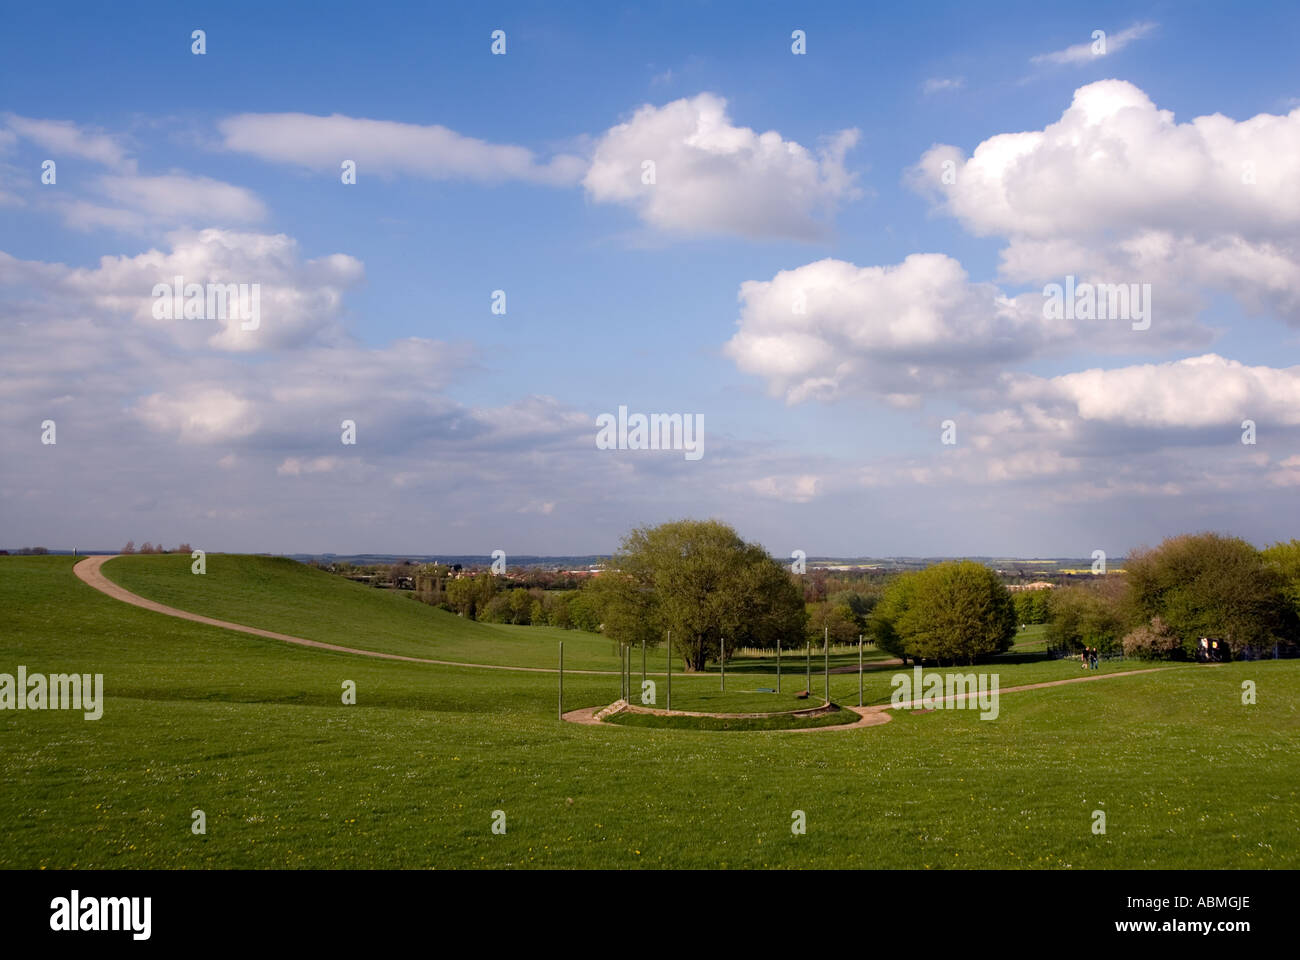 runners running jogging in Campbell Park Central Milton Keynes MK - Stock Image